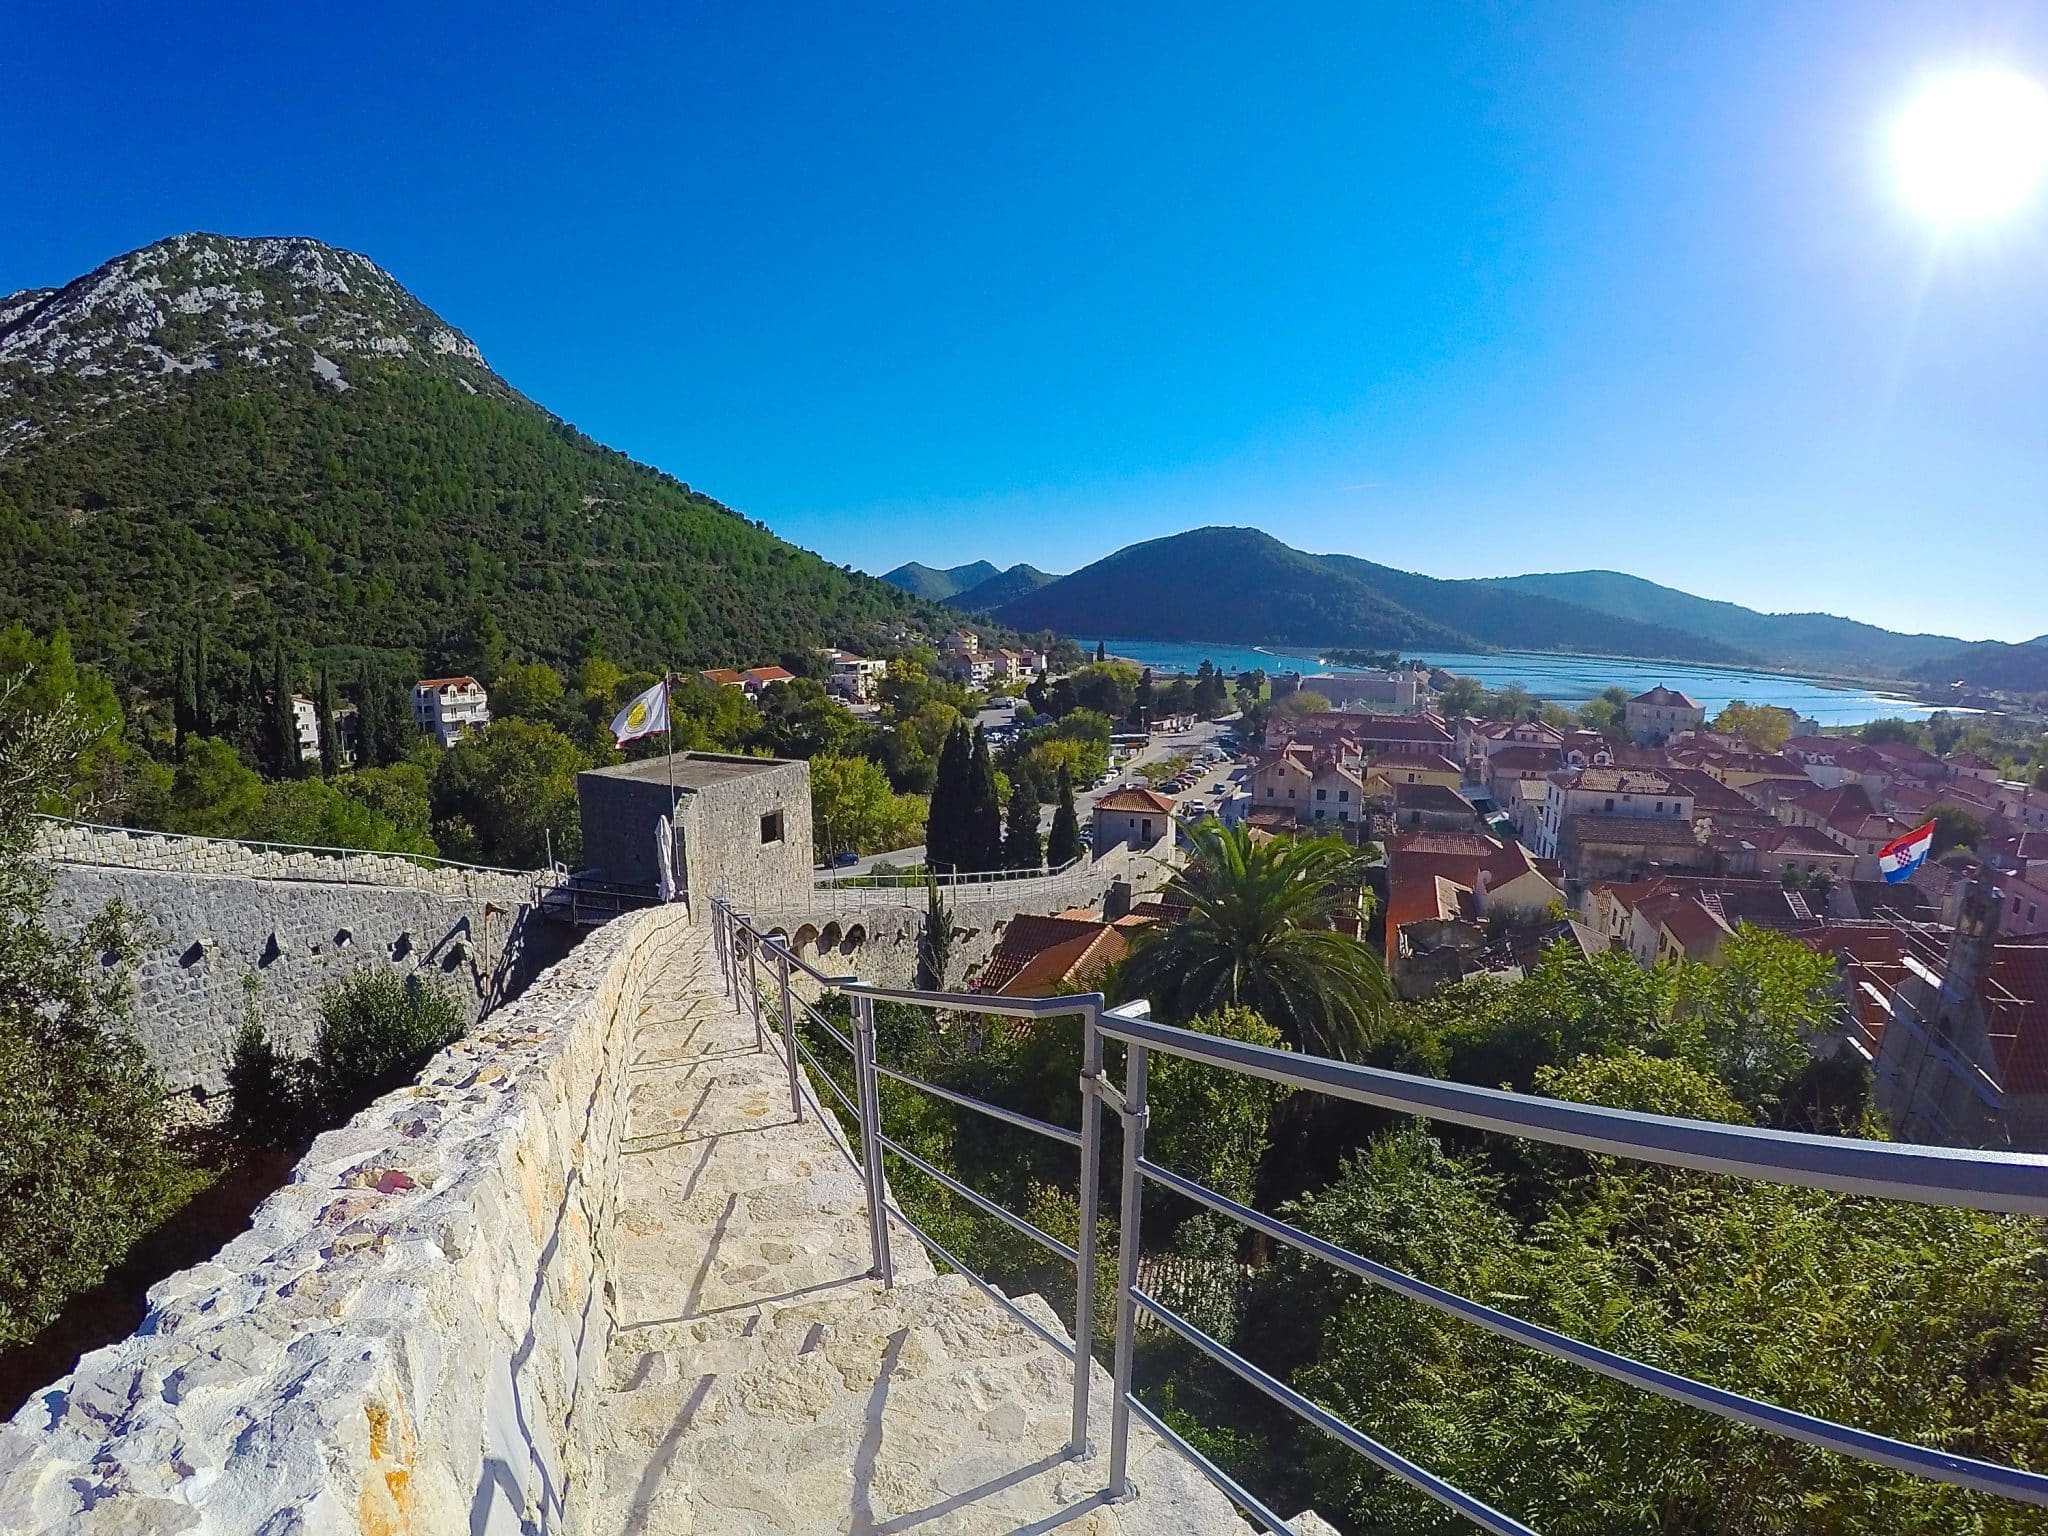 Hiking the Walls of Ston, the Second Largest Walls in the World [VIDEO + PICTURES]